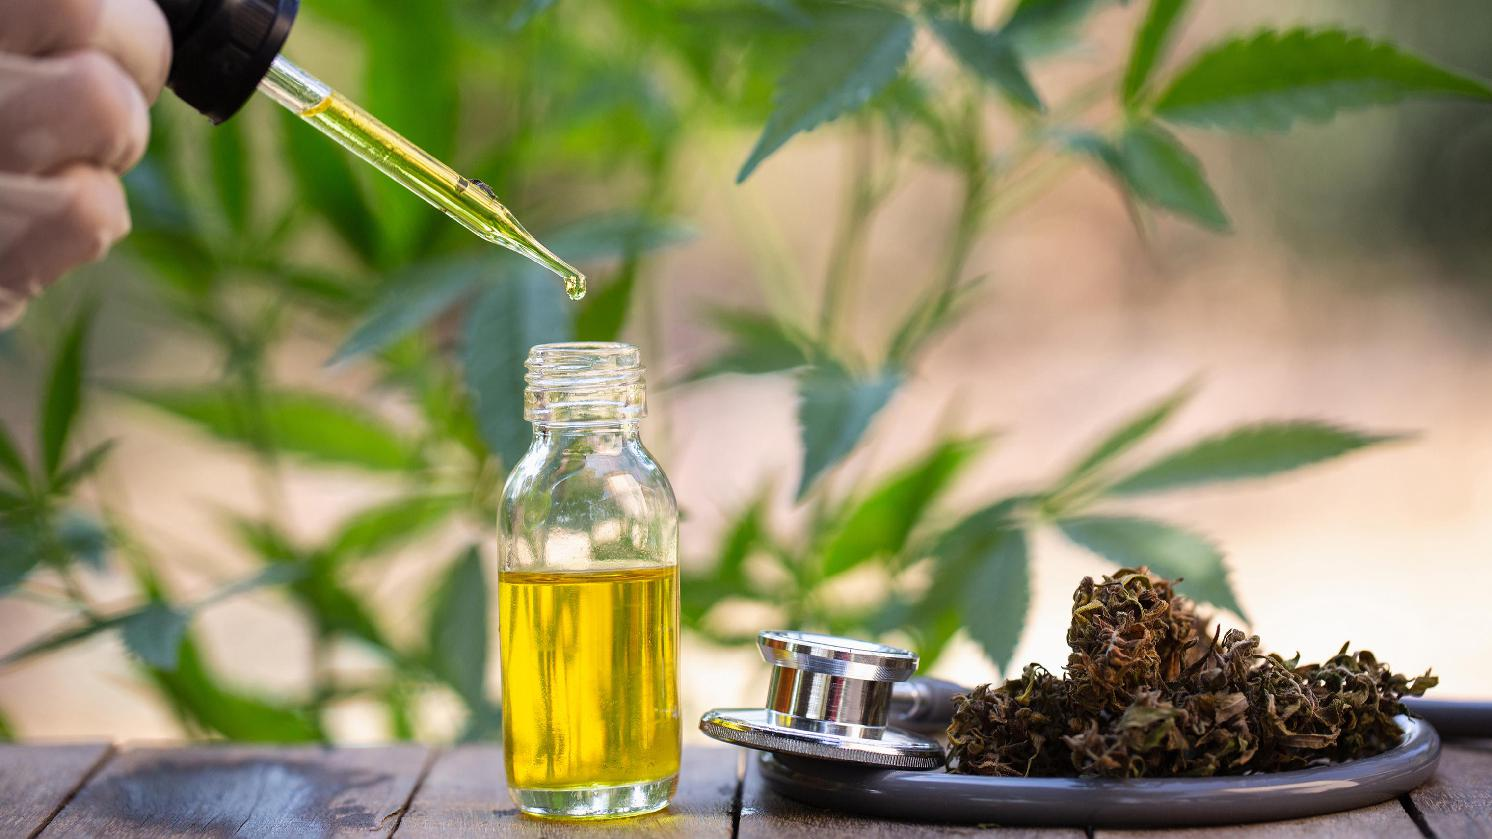 TD Jakes CBD Oil - Clinically Proven!